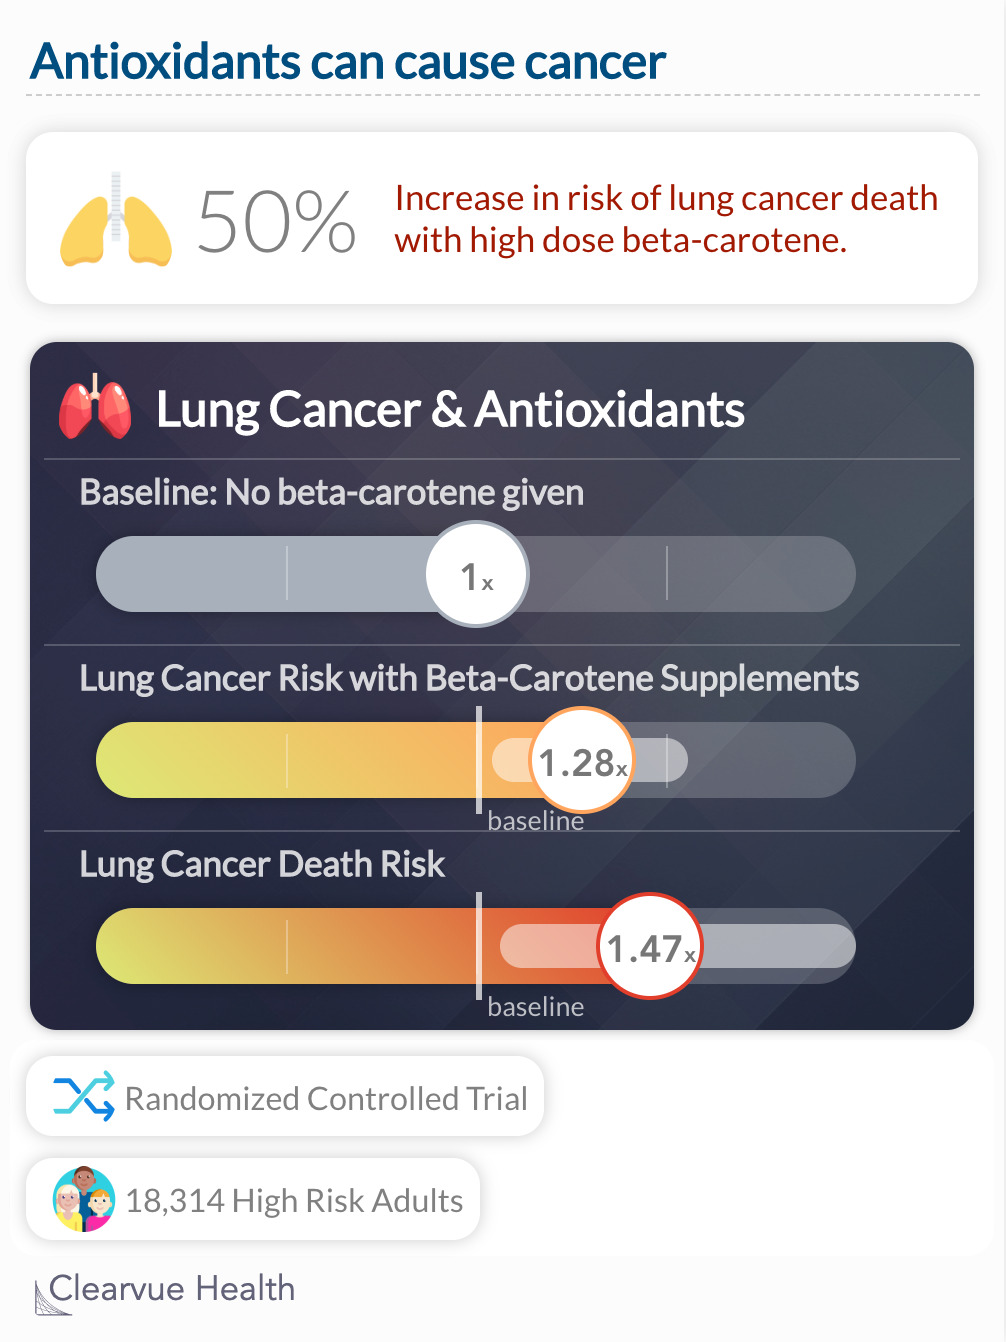 Chart on antioxidant dangers and cancer risk